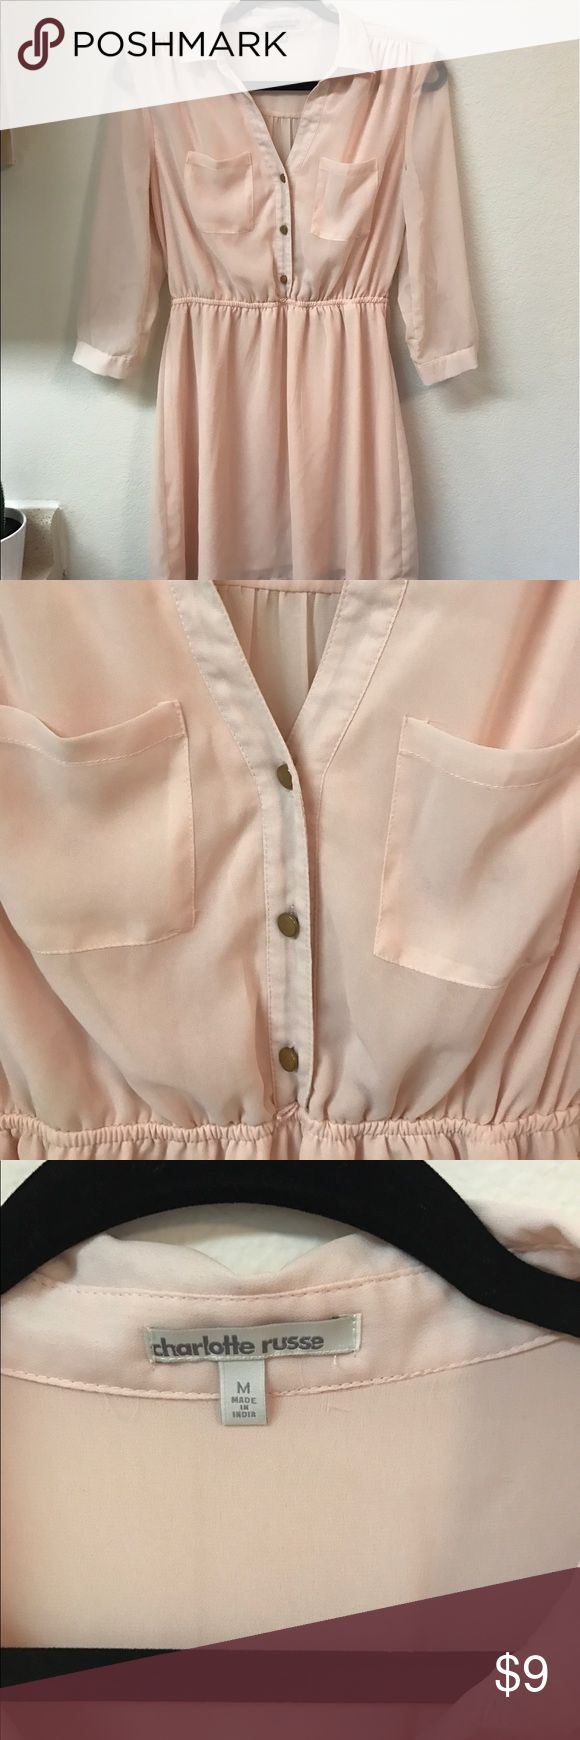 Flowing Blouse Fitted at the waist, lovely blush color. Buttons down the front. There are very small belt loops for a skinny belt around the waist.  100% polyester   #tunic #blouse #blushpink #rose #charlotterusse #charlotterussetunic #feminine #girly #chic #boho #bohemian #bohoblouse #bohemiantunic #sizemedium #mediumtunic Charlotte Russe Tops Blouses